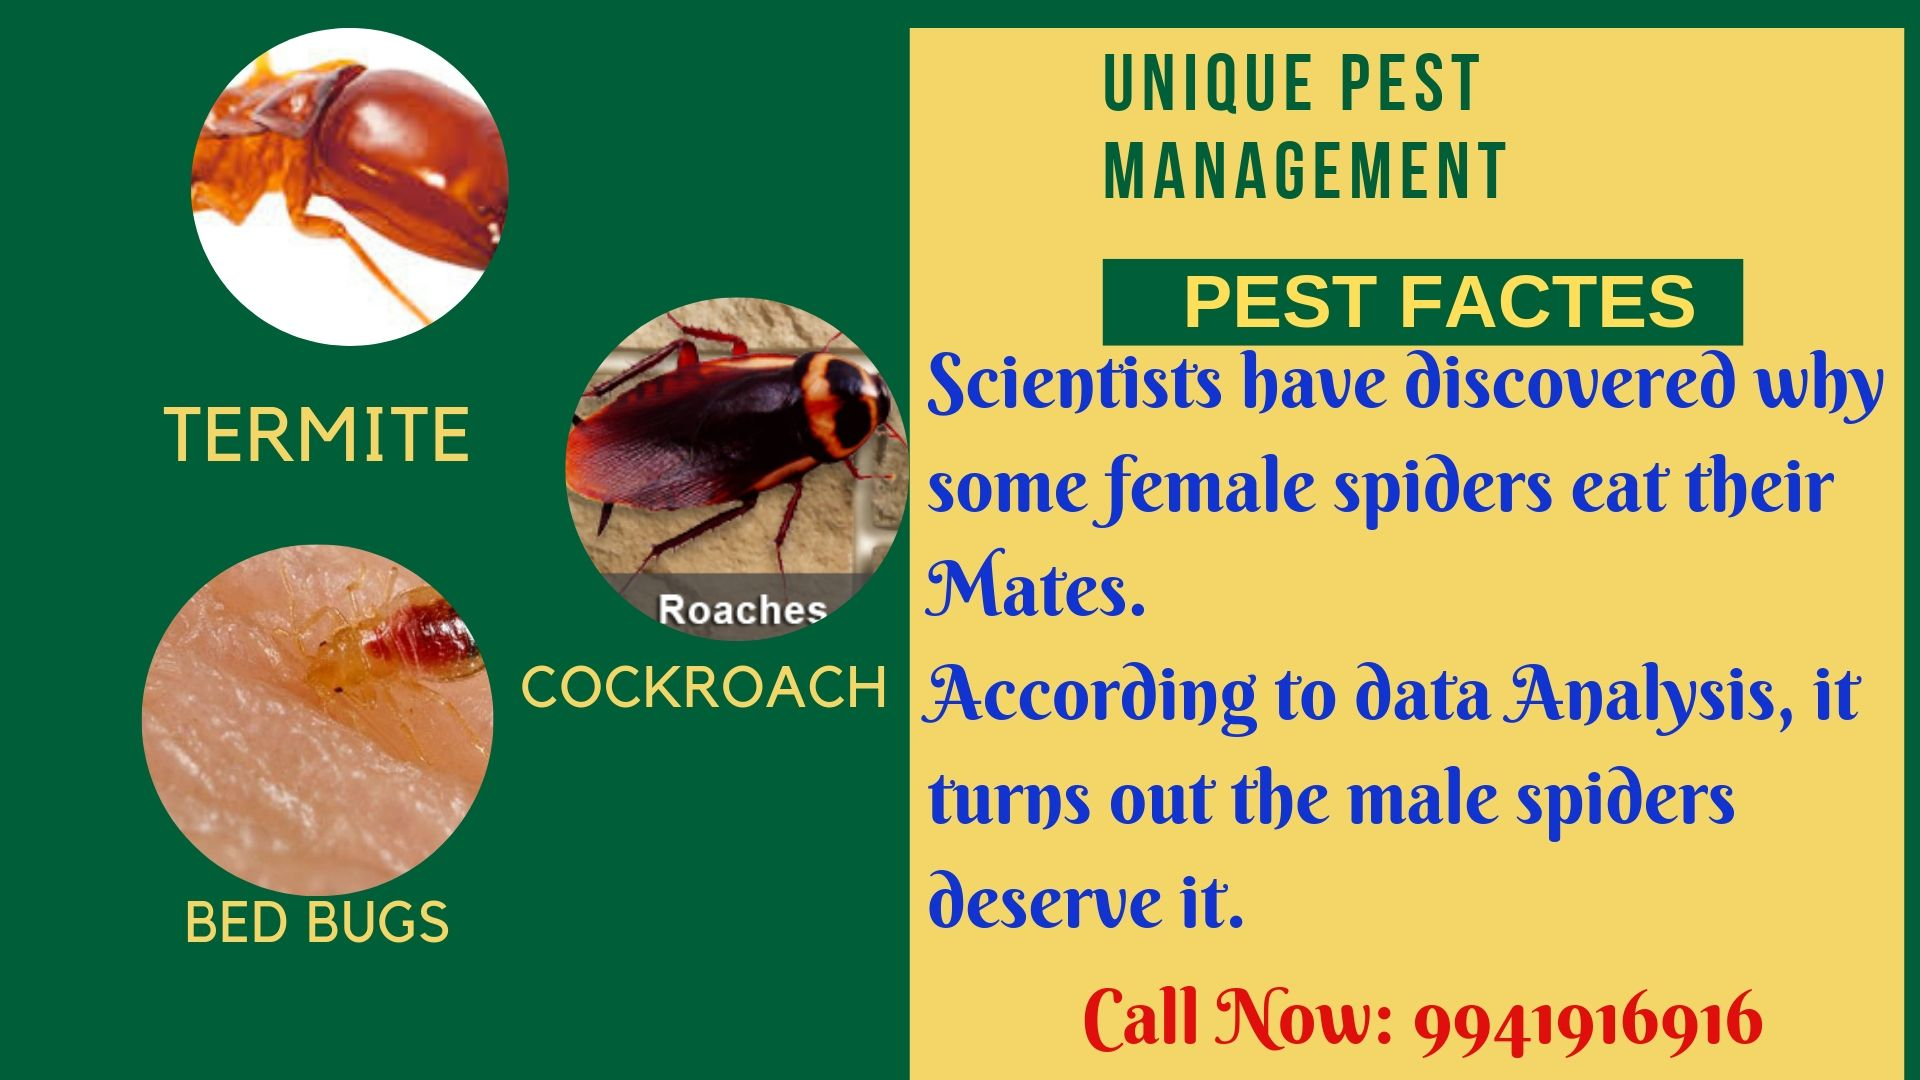 Pin by Kiruthikashety on unique pest control Bed bugs